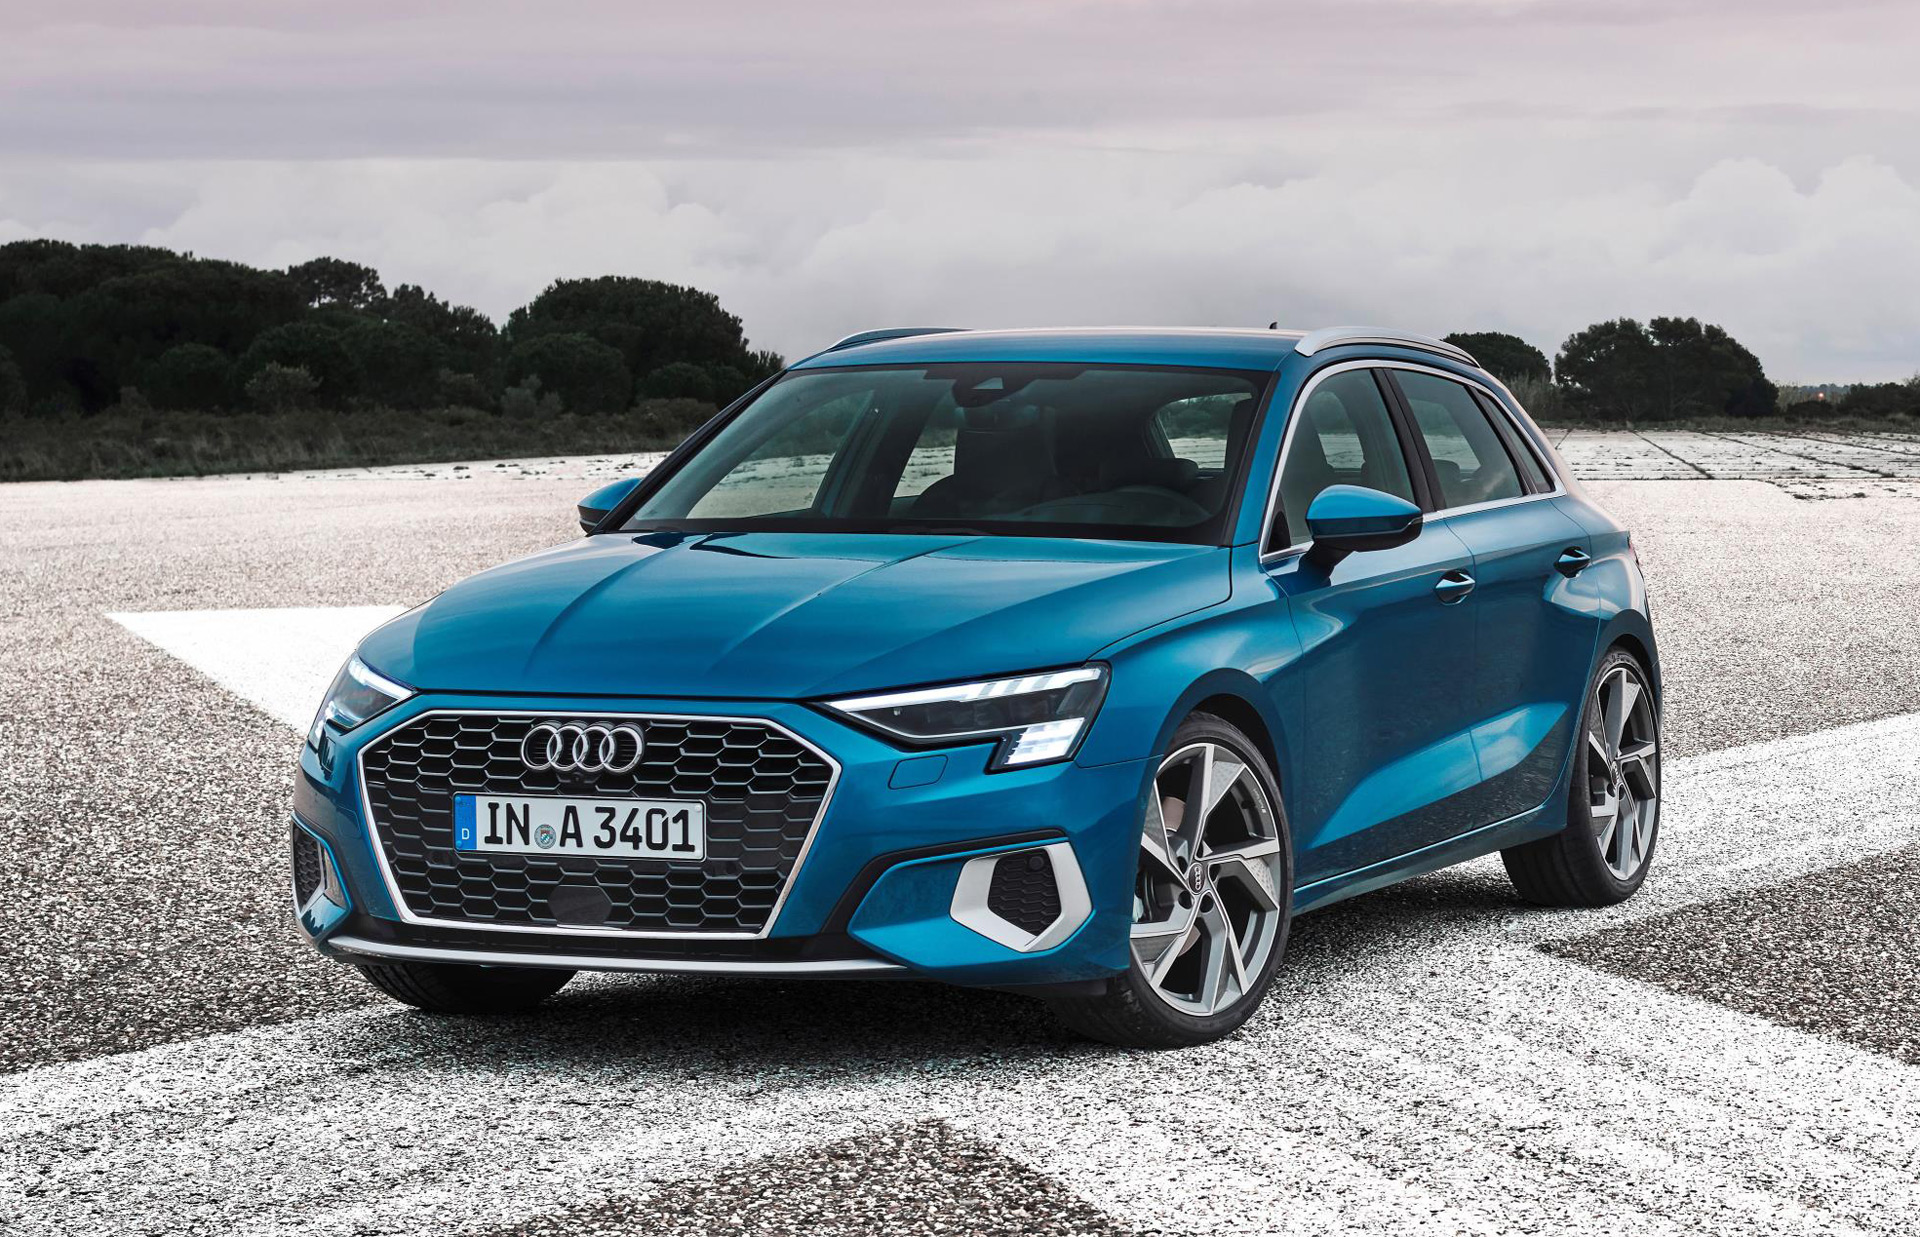 New Audi A3 Revealed In Sportback Body Style